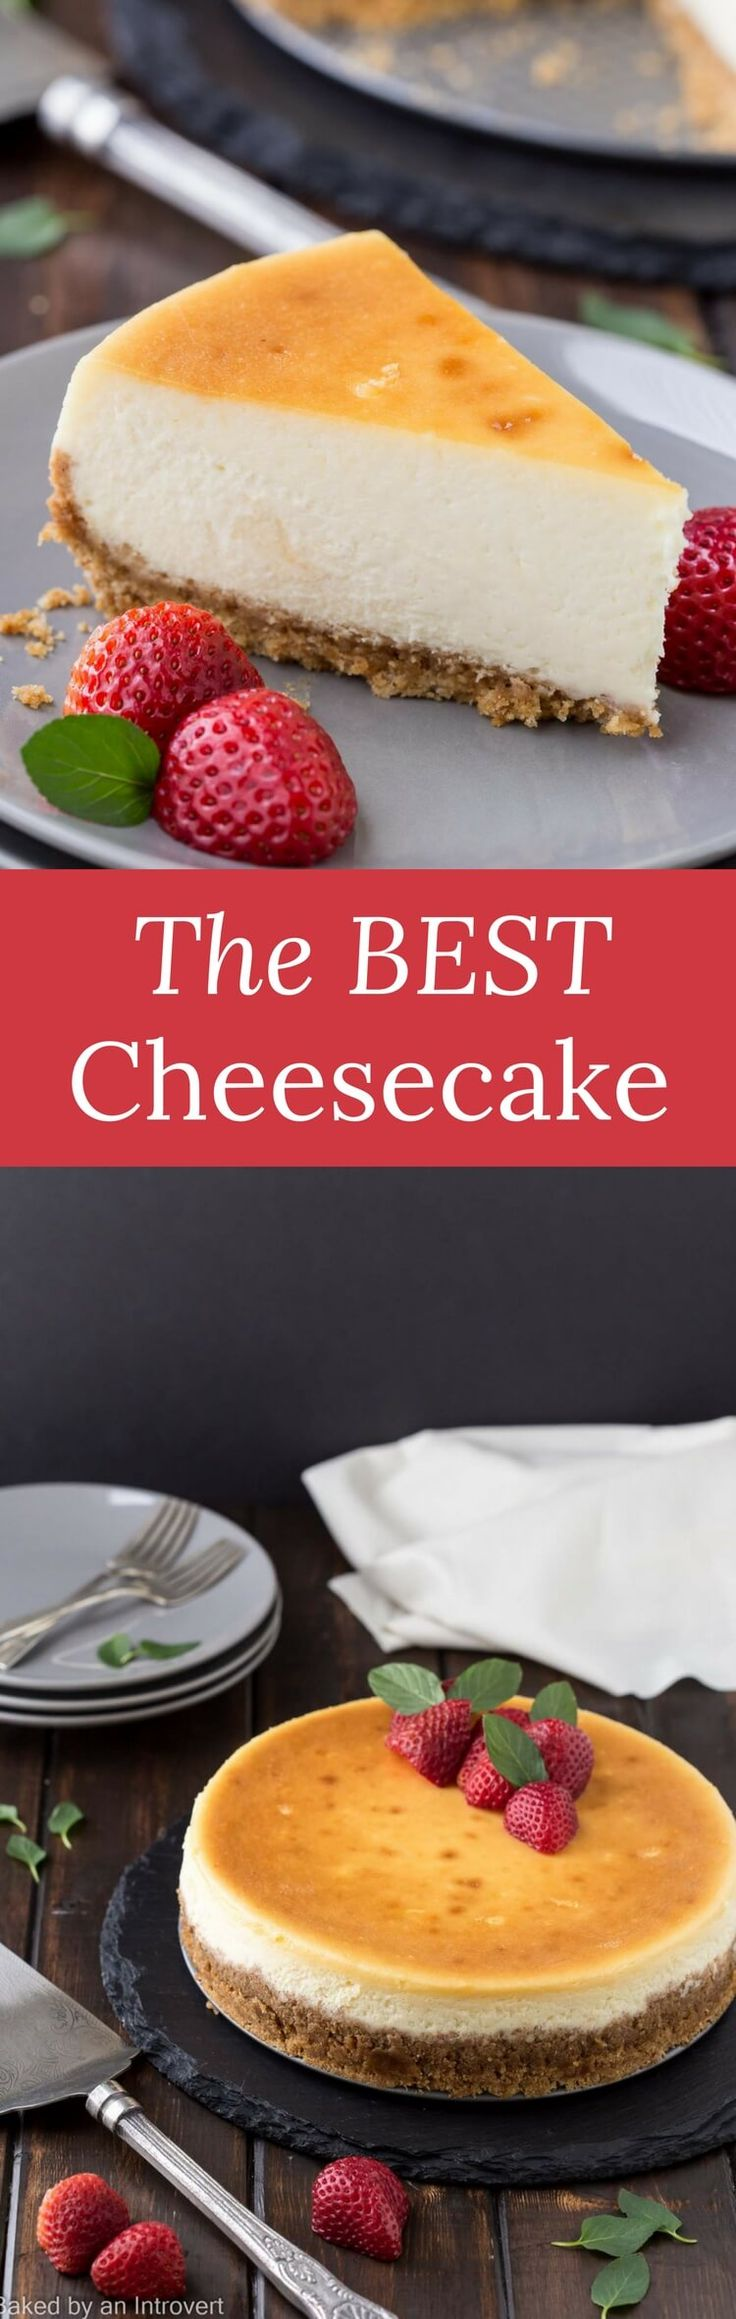 Learn how to make the best cheesecake with this melt in your mouth recipe!  via @introvertbaker